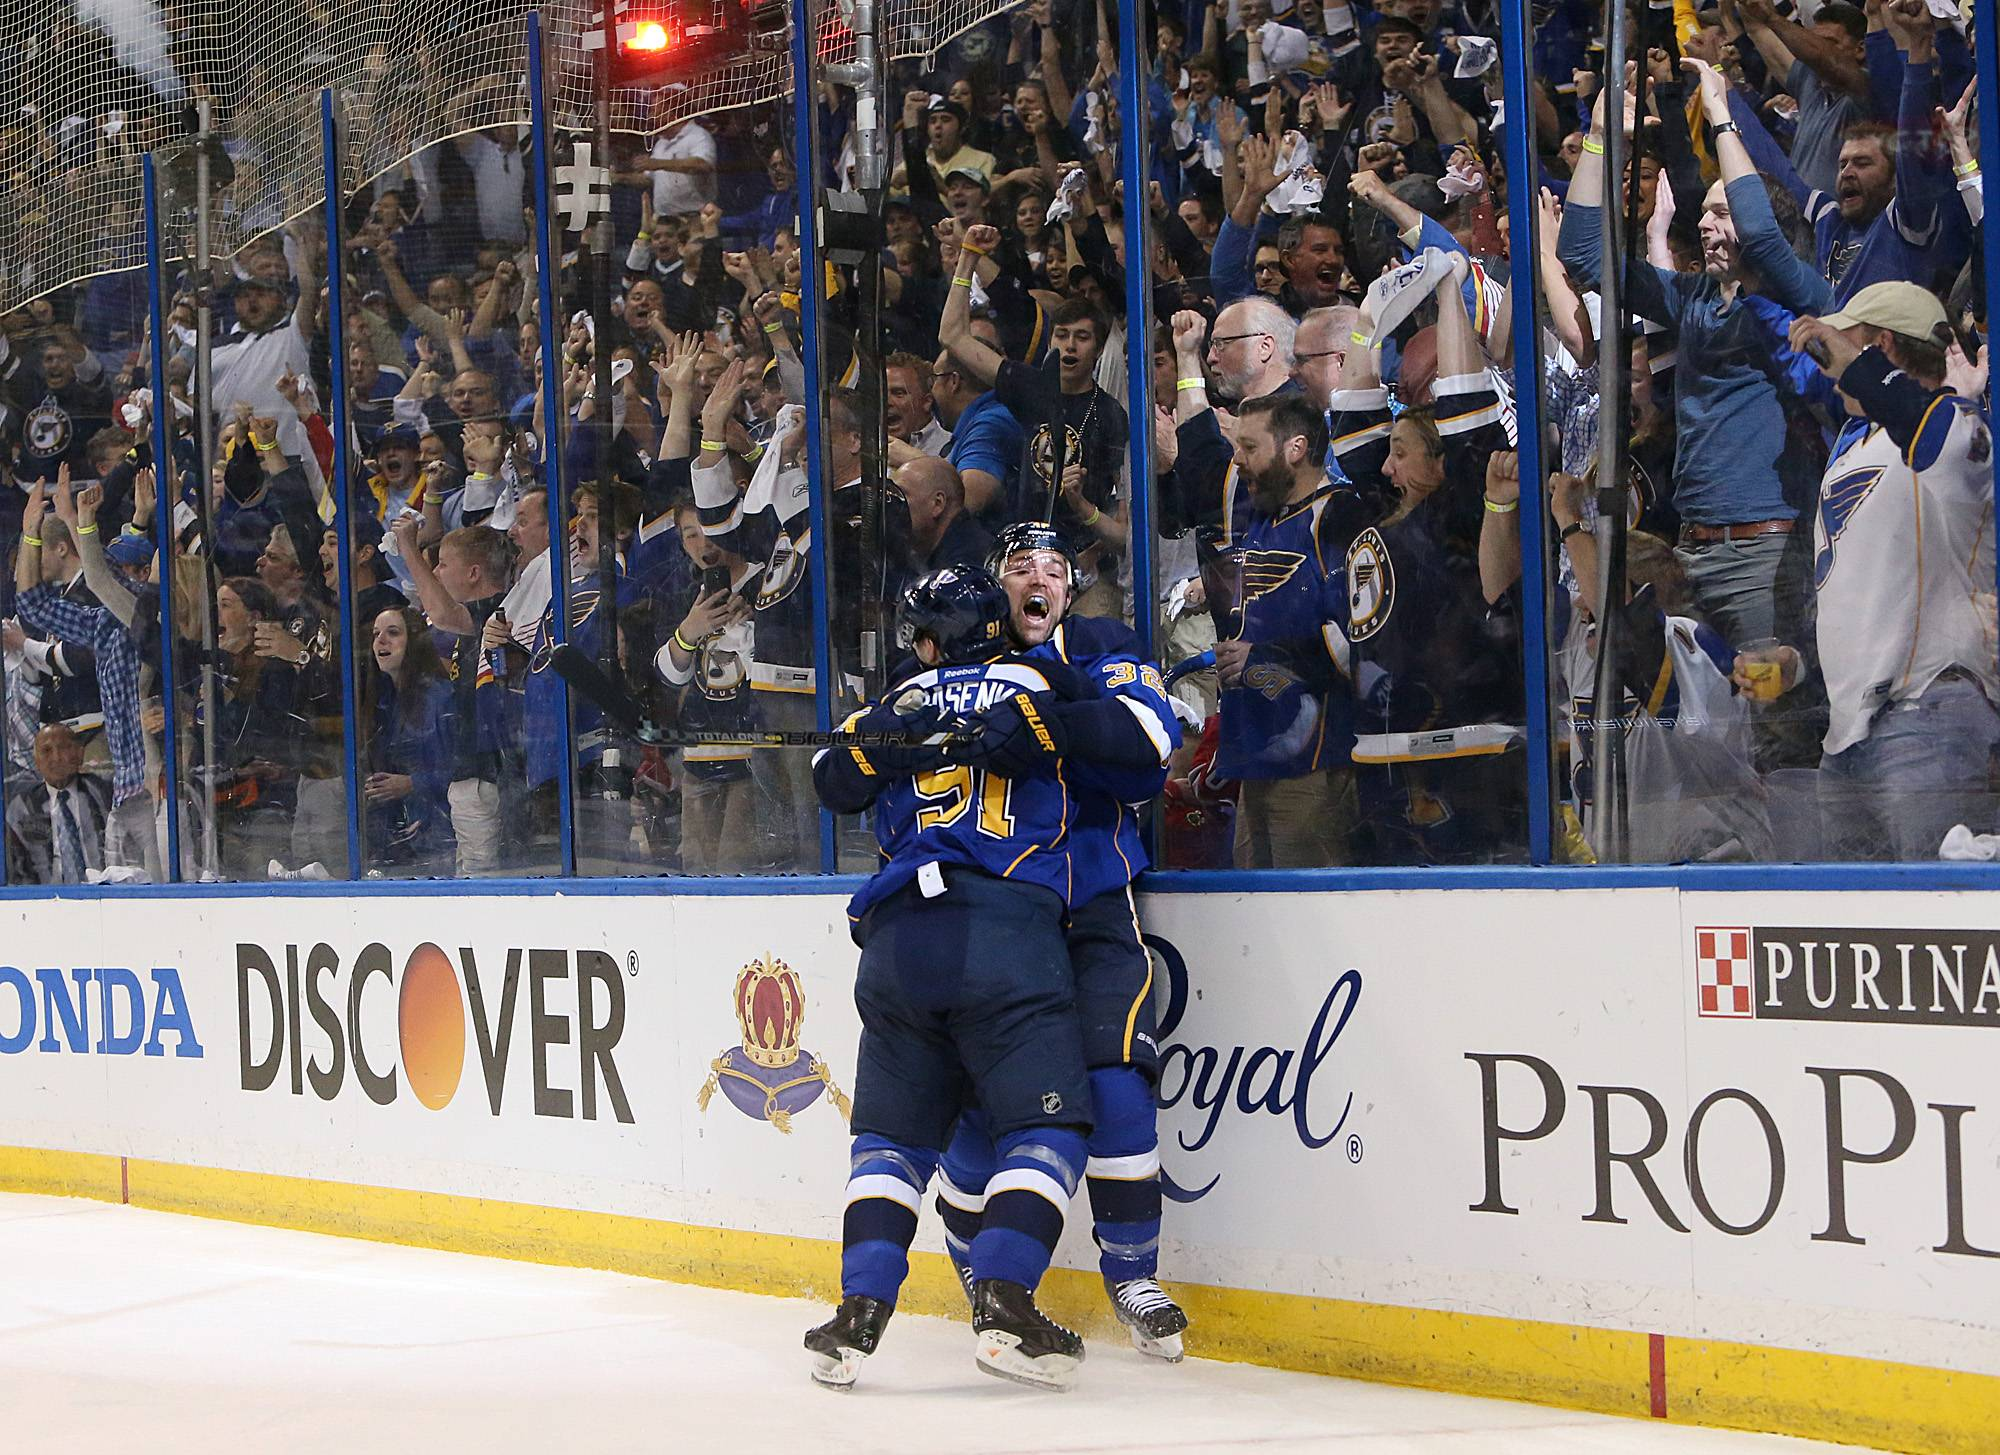 St. Louis Blues left wing Chris Porter, center right, is embraced by teammate Vladimir Tarasenko after scoring the first goal in the first period of Game 2 of a first-round NHL hockey playoff series on Saturday, April 19, 2014, in St. Louis.